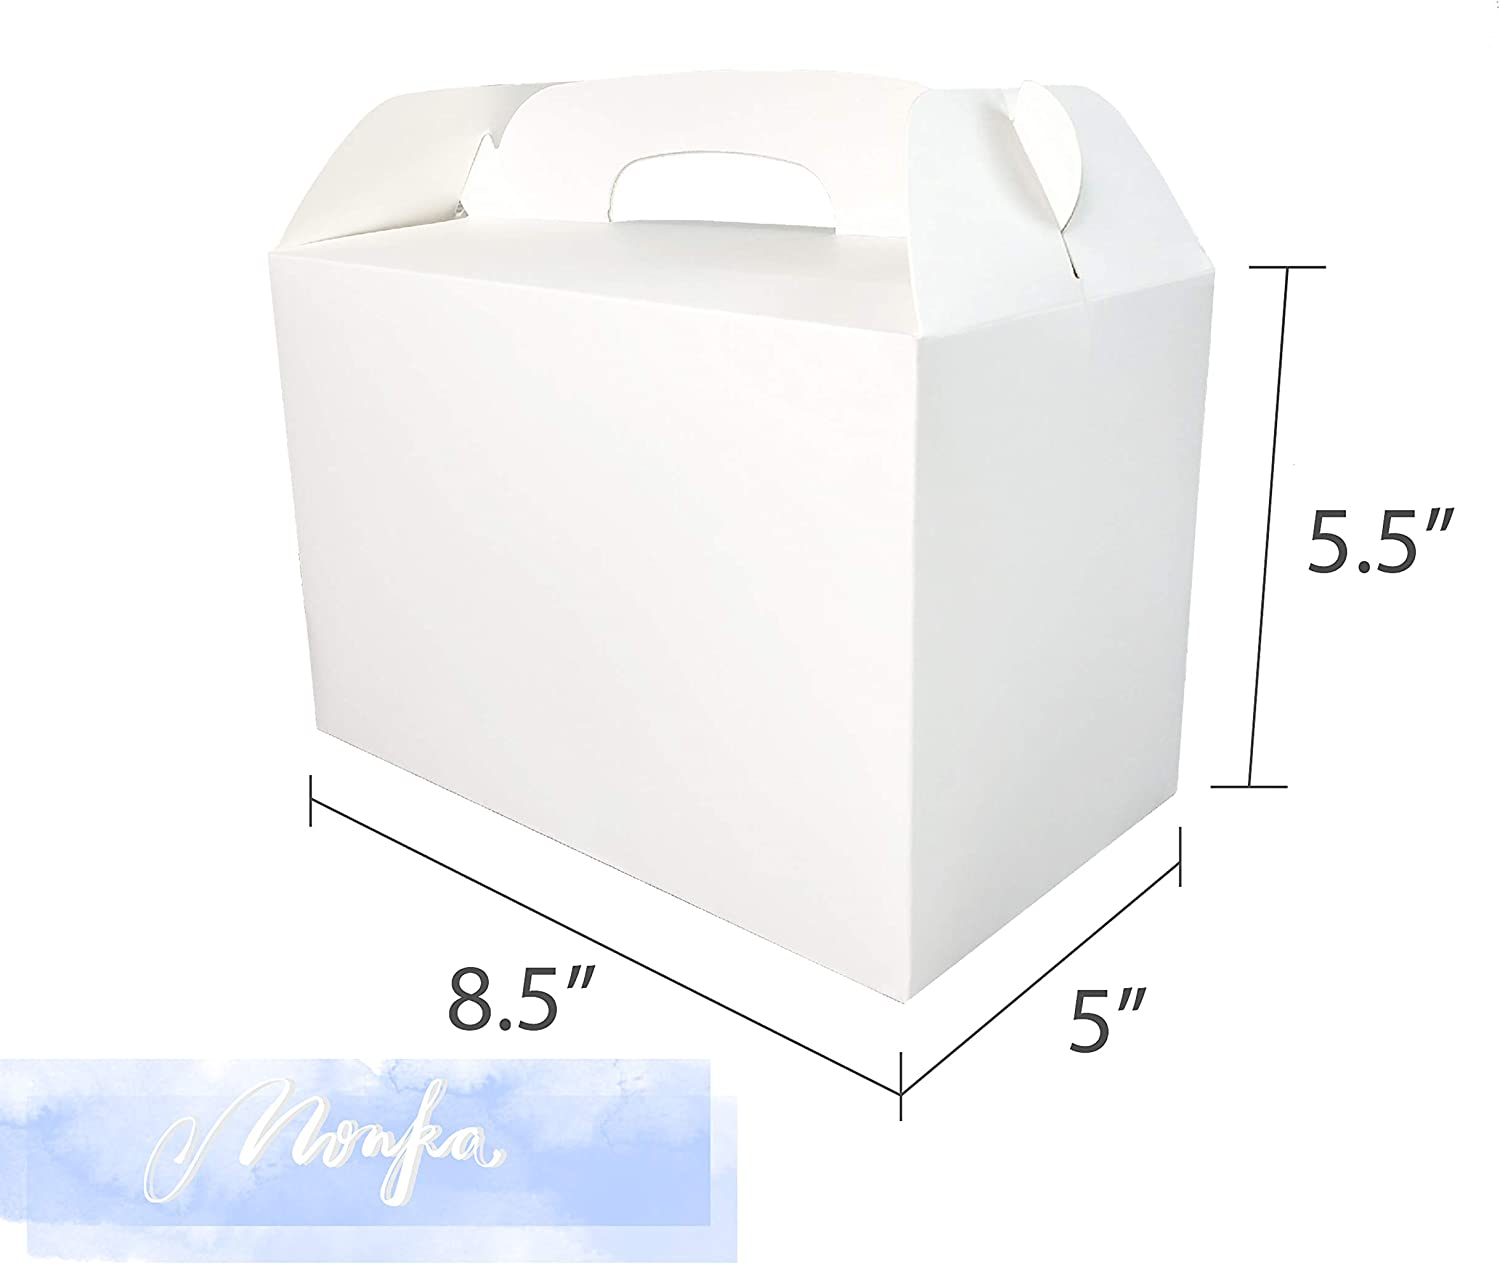 Birthday Goodies Box Party Box No Assembly Needed MintieJamie White Treat Boxes 2 Dozen White Boxes for Favor 8.5X5X5.5 Inches Large Handle Favor Boxes Kids Party Favor Box